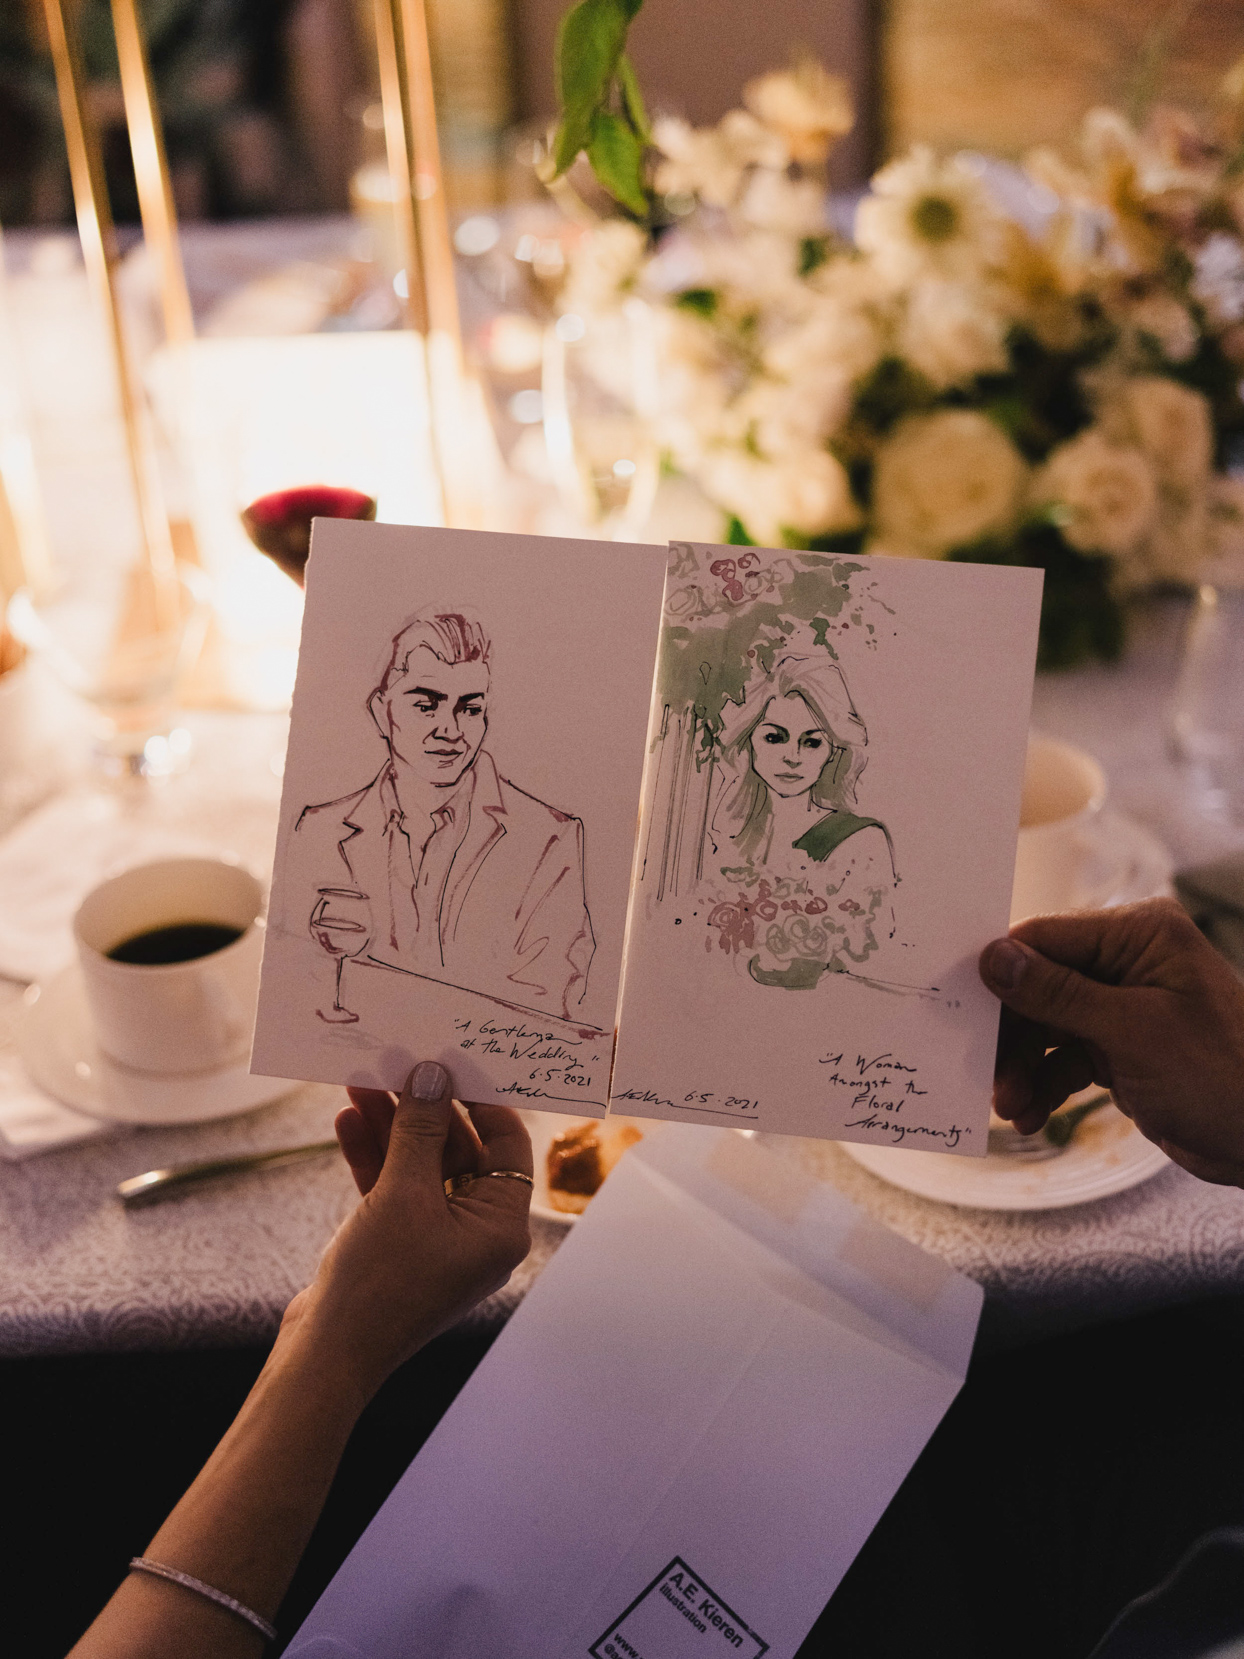 painted portraits done by artist at wedding